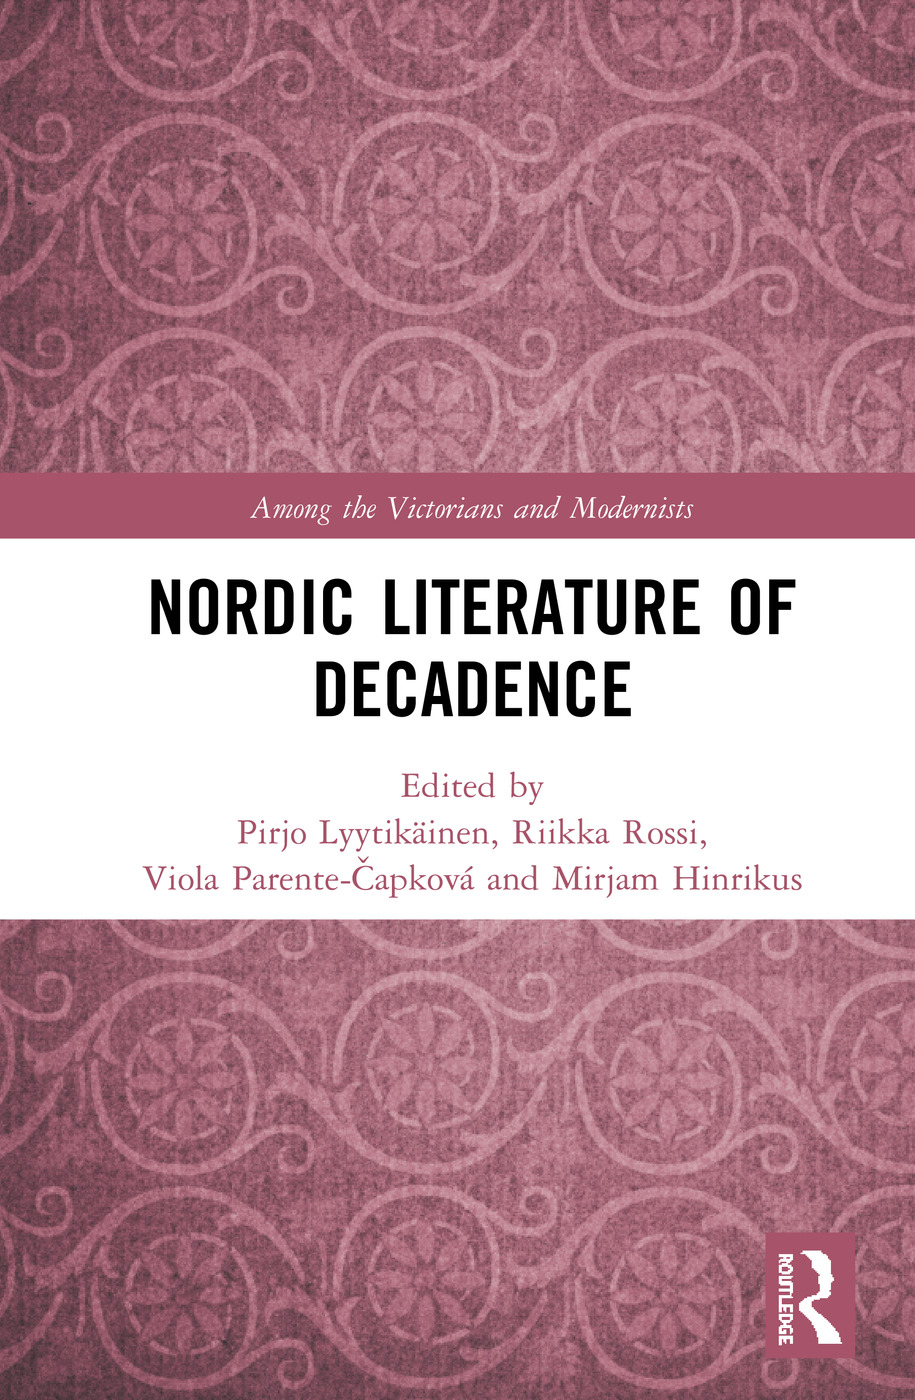 Nordic Literature of Decadence book cover